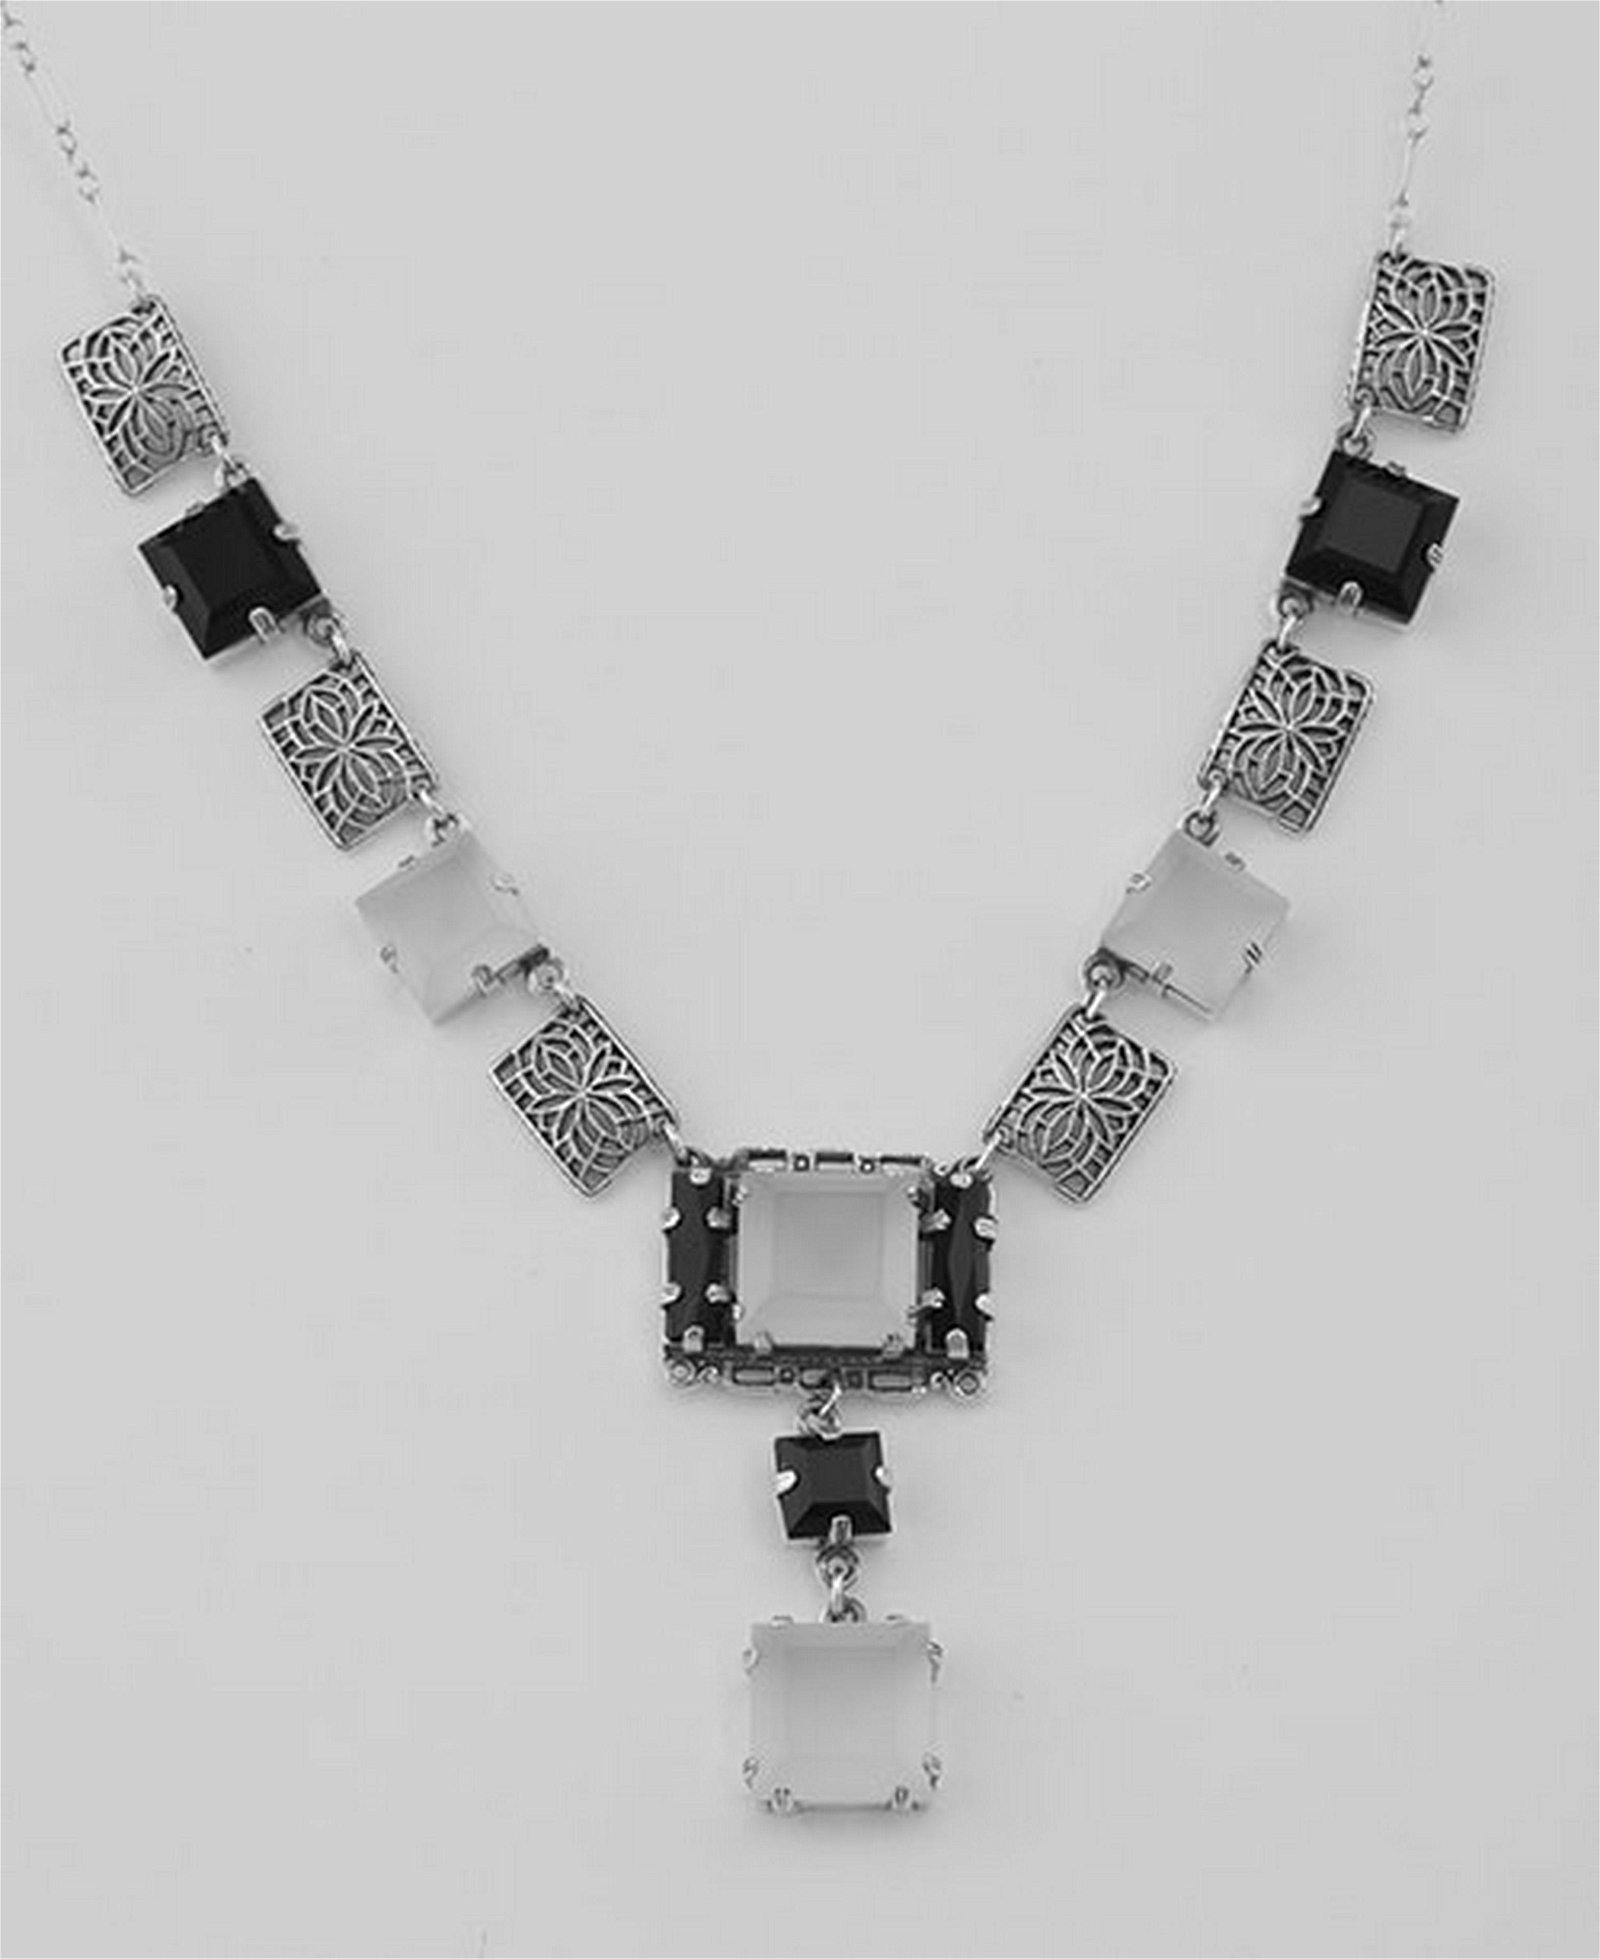 Art Deco Style Onyx and Quartz Crystal Necklace - Sterl